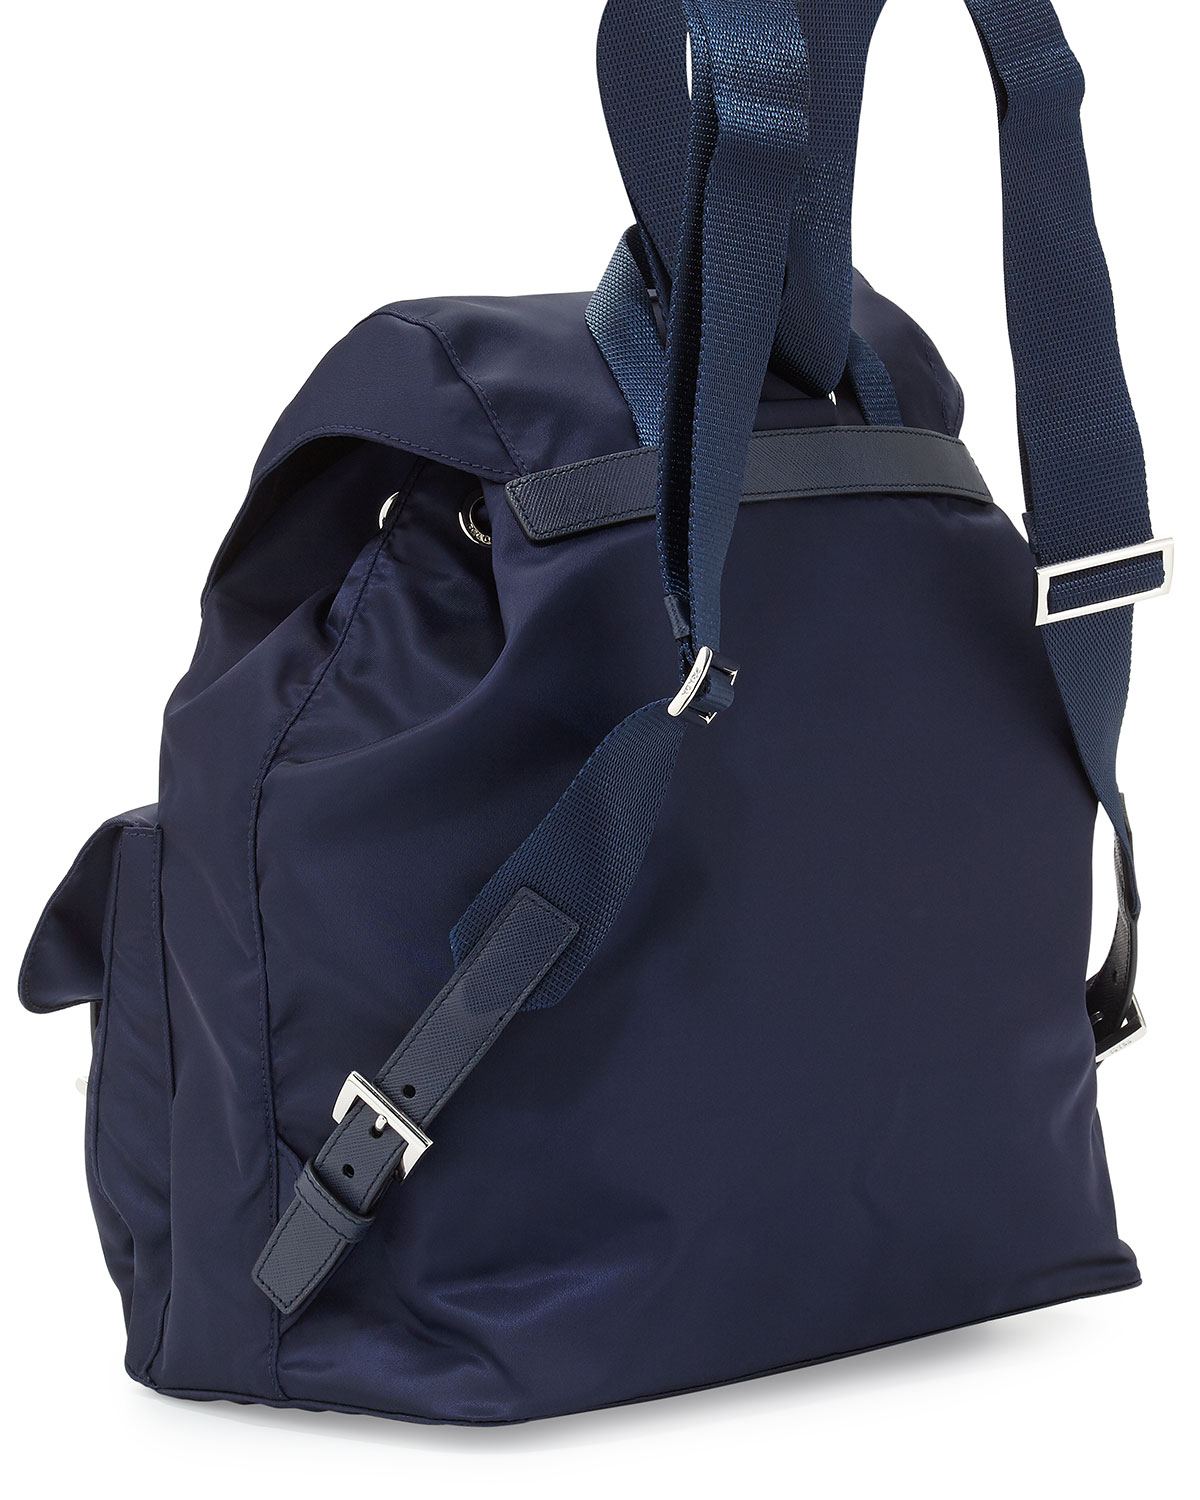 a90991819689d1 ... coupon code for lyst prada vela medium backpack in blue 76ab1 de572